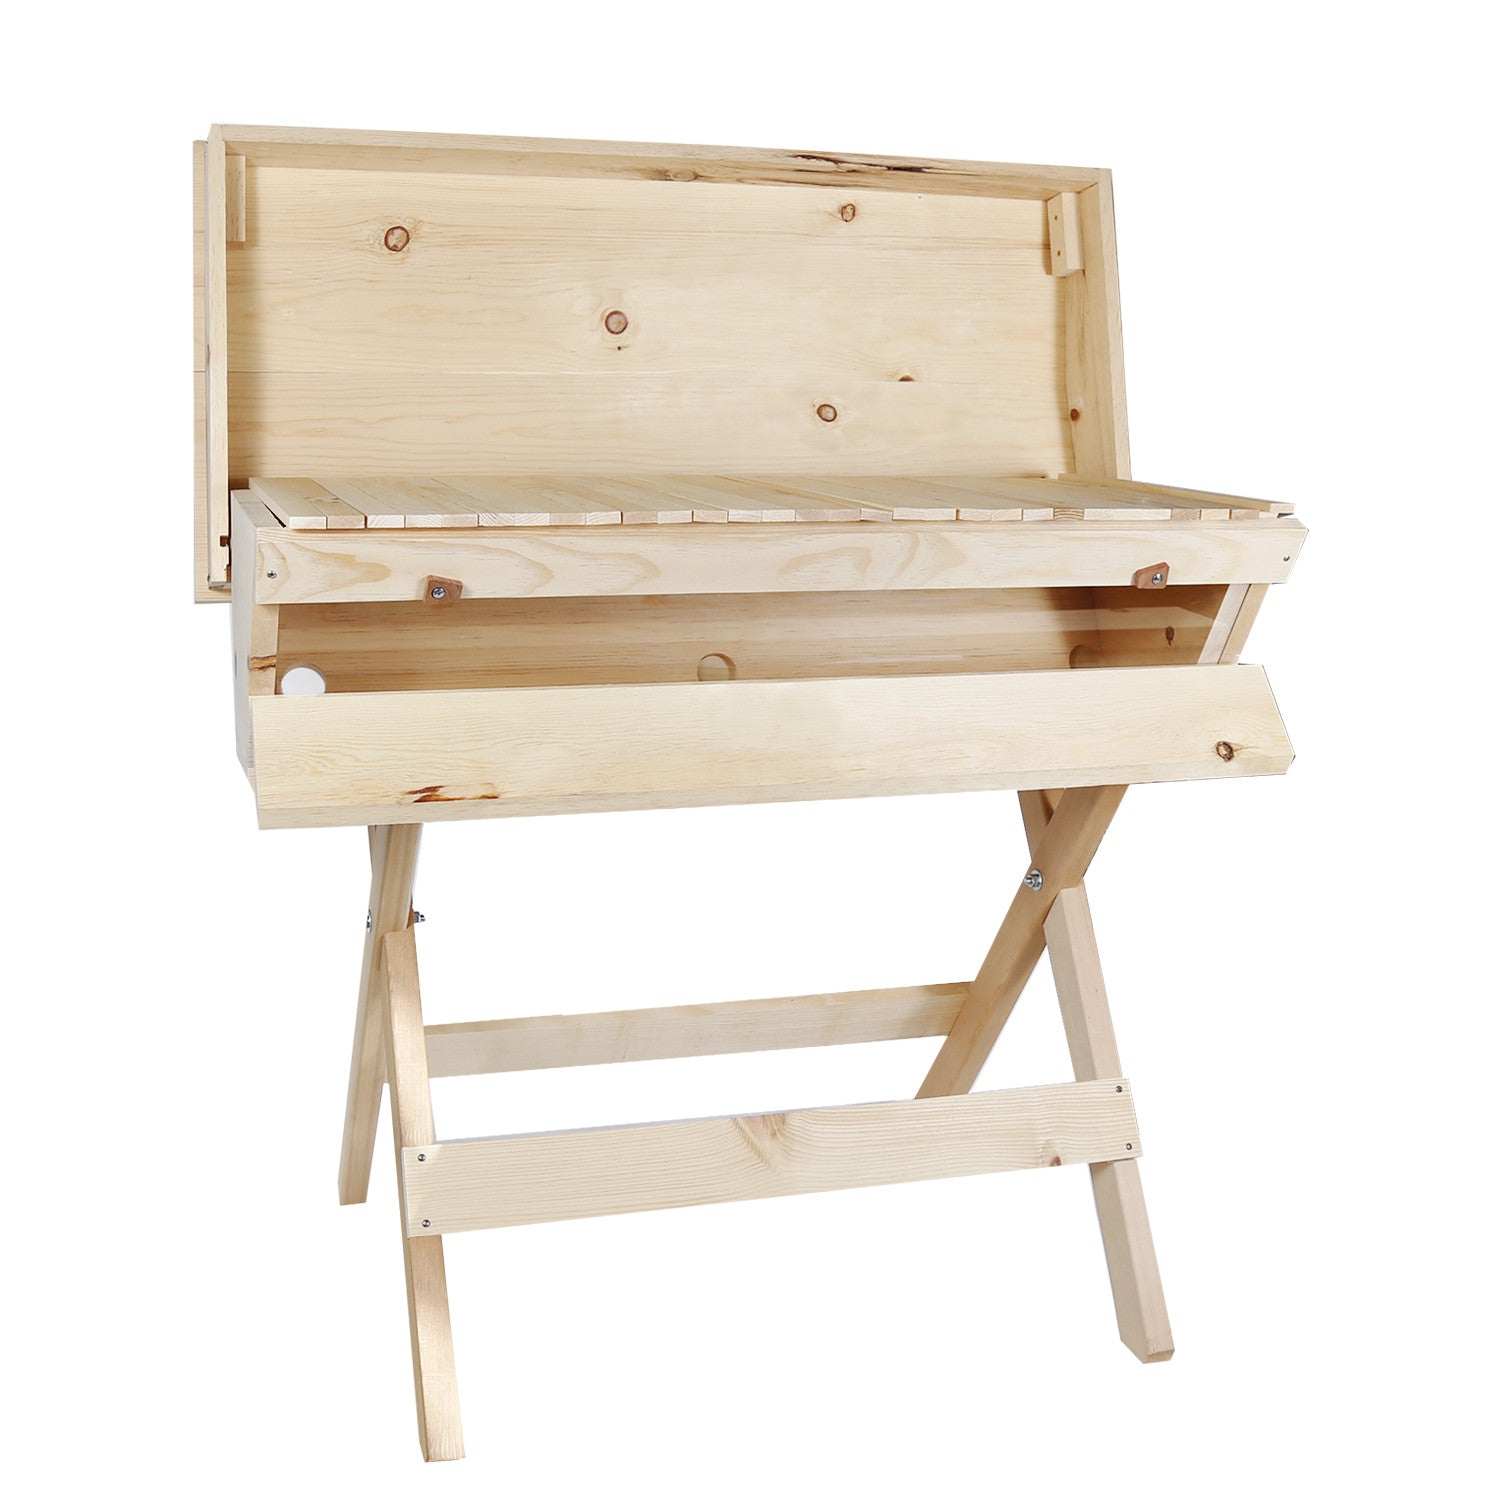 Warre and top bar hives now available in sugar pine!